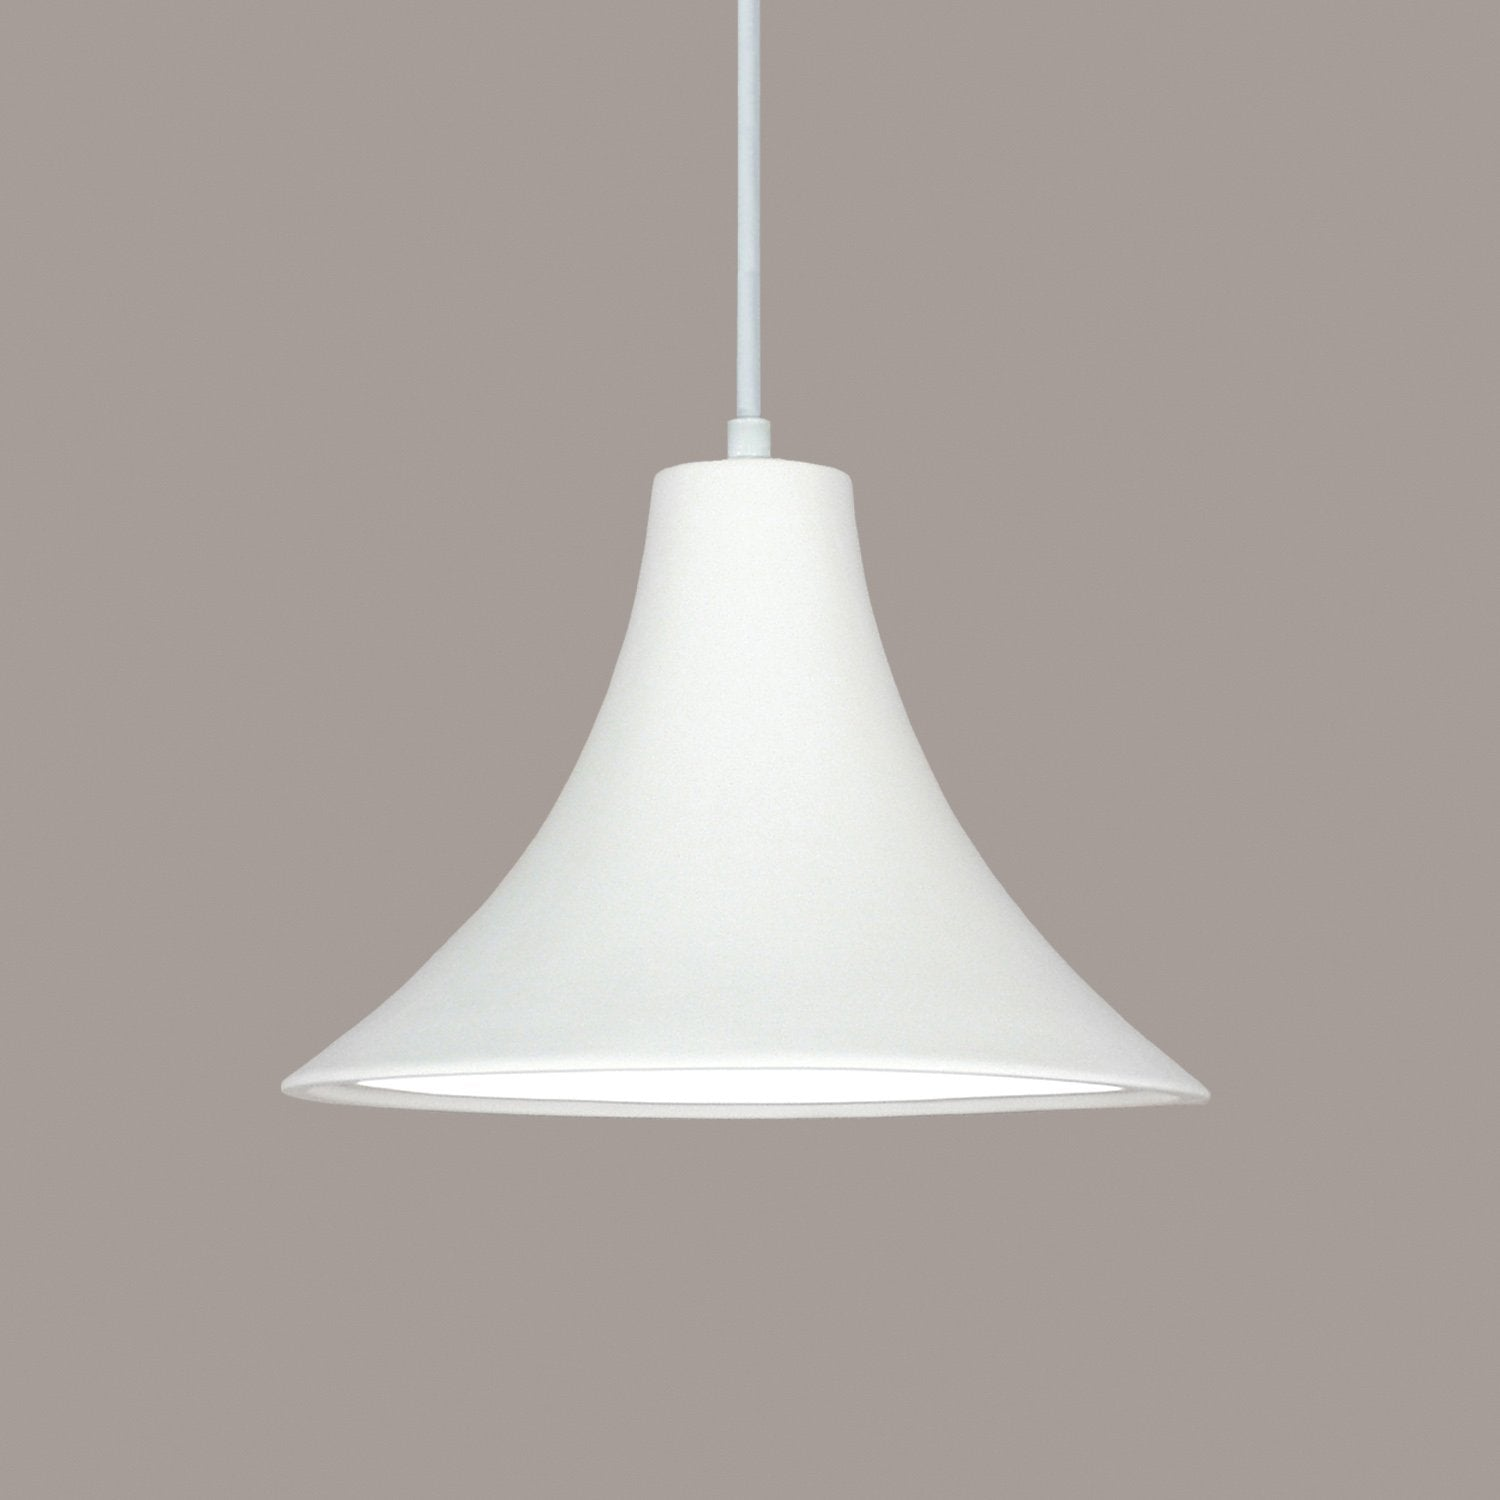 A19 P501-A21-BCC Islands of Light Collection Madera Dusty Teal Finish Pendant